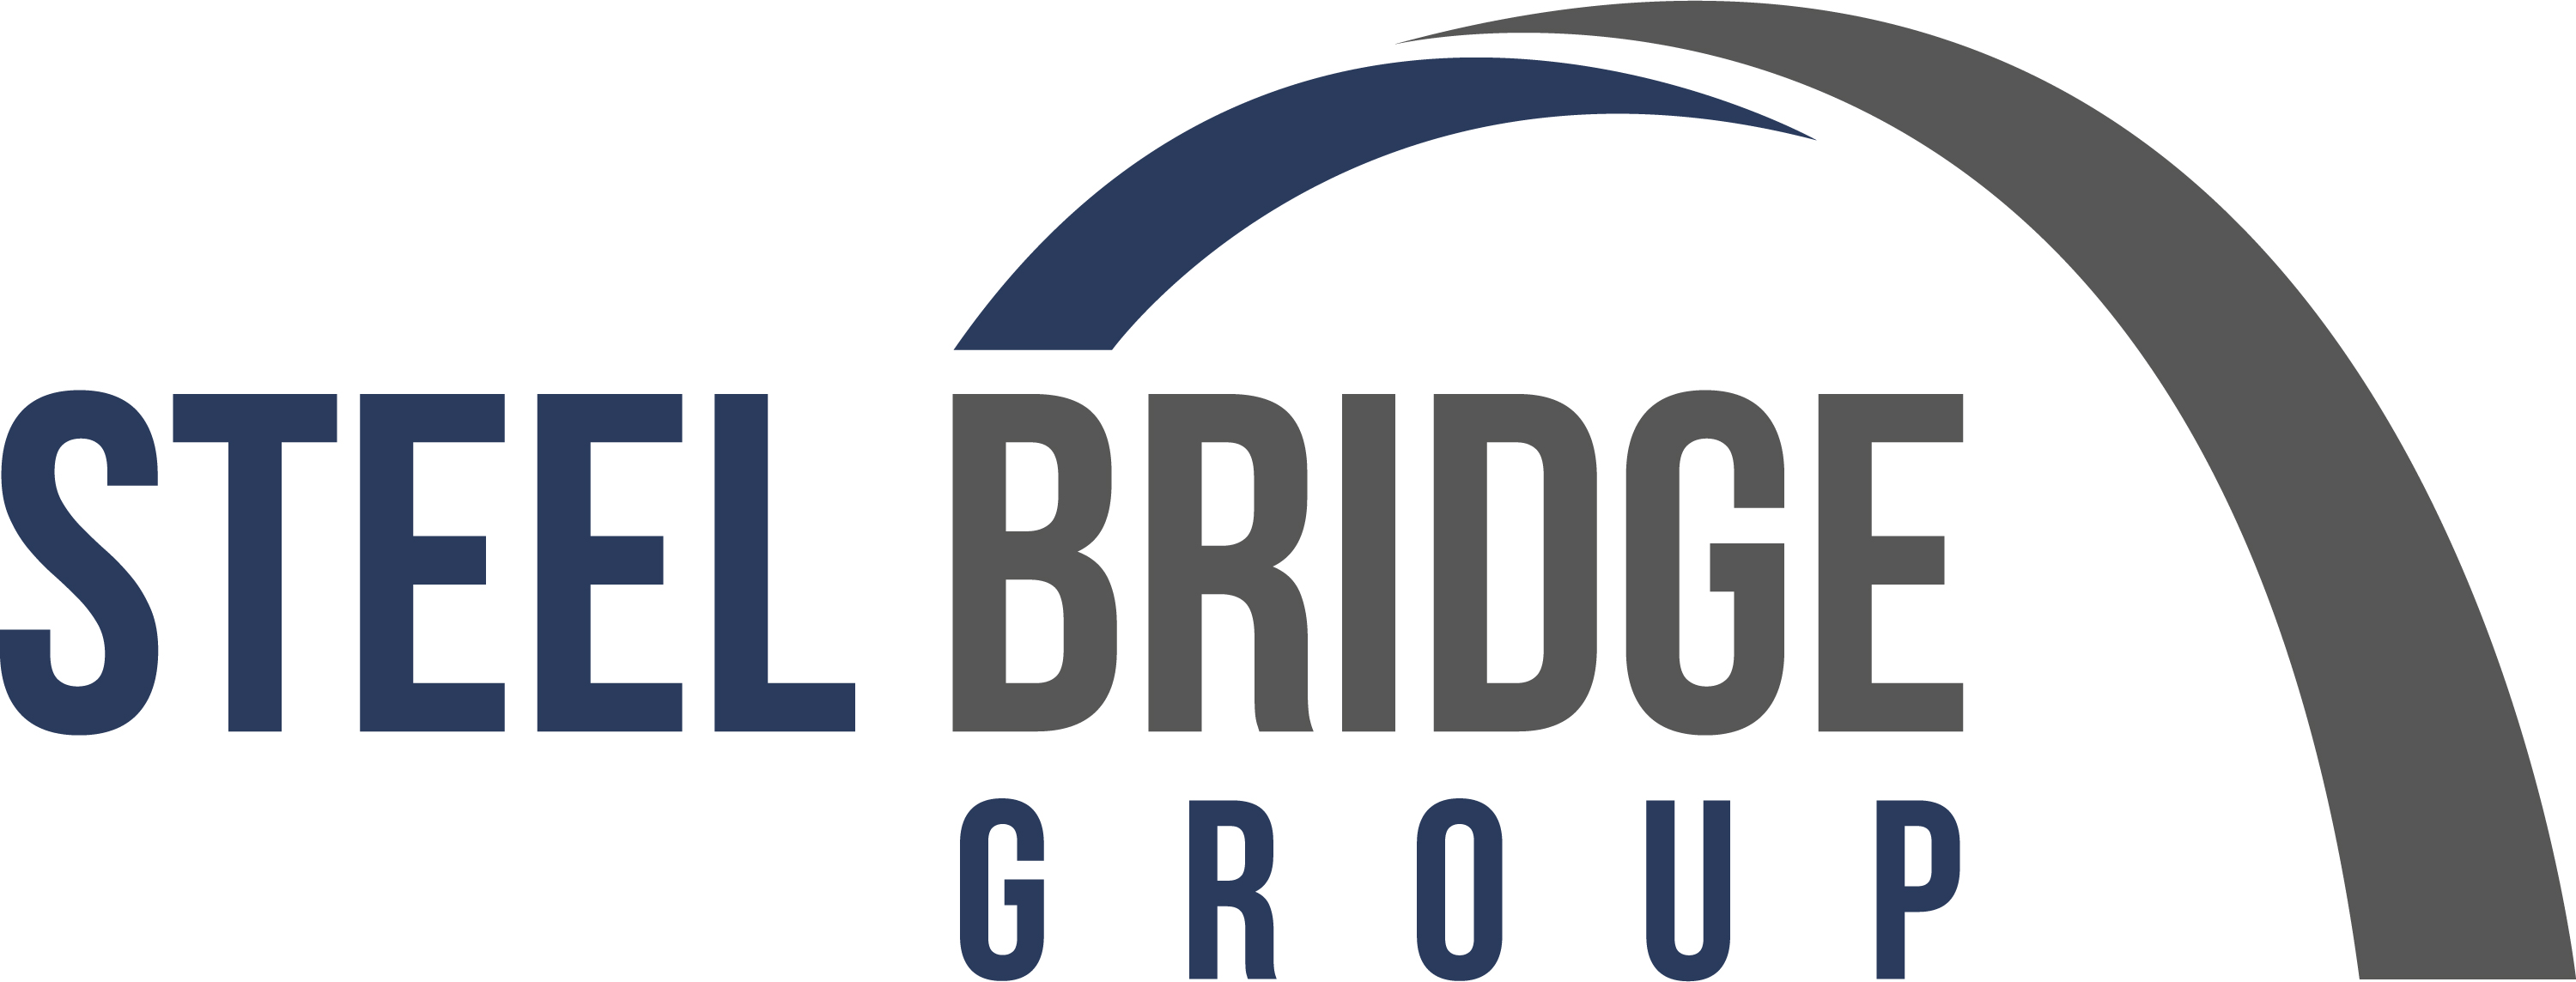 Steel Bridge Logo